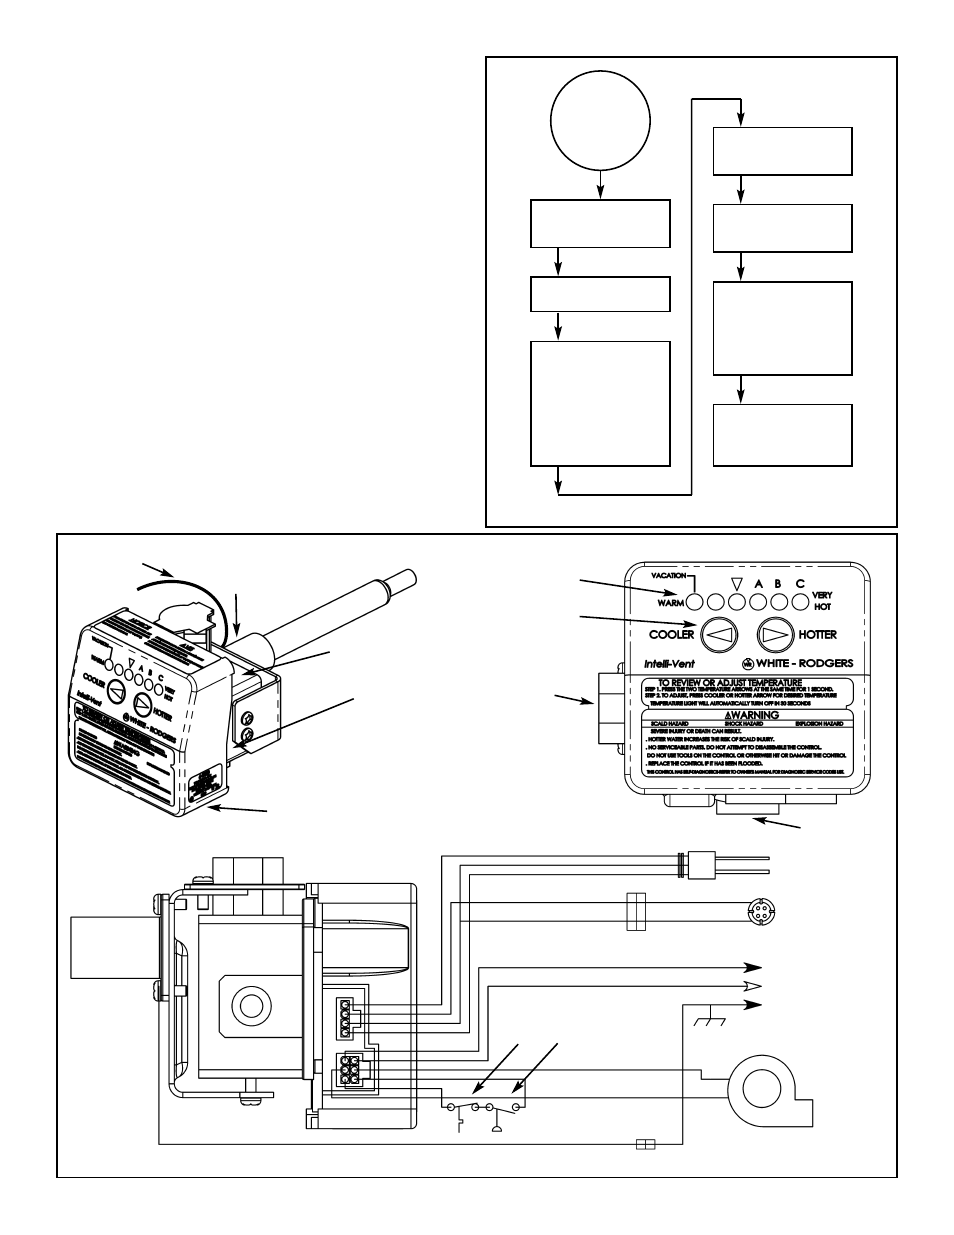 white rodgers intelli vent technical support wiring diagrams wiring diagram schemes White Rodgers Intelli-Vent Problems White Rodgers Gas Valve Recall